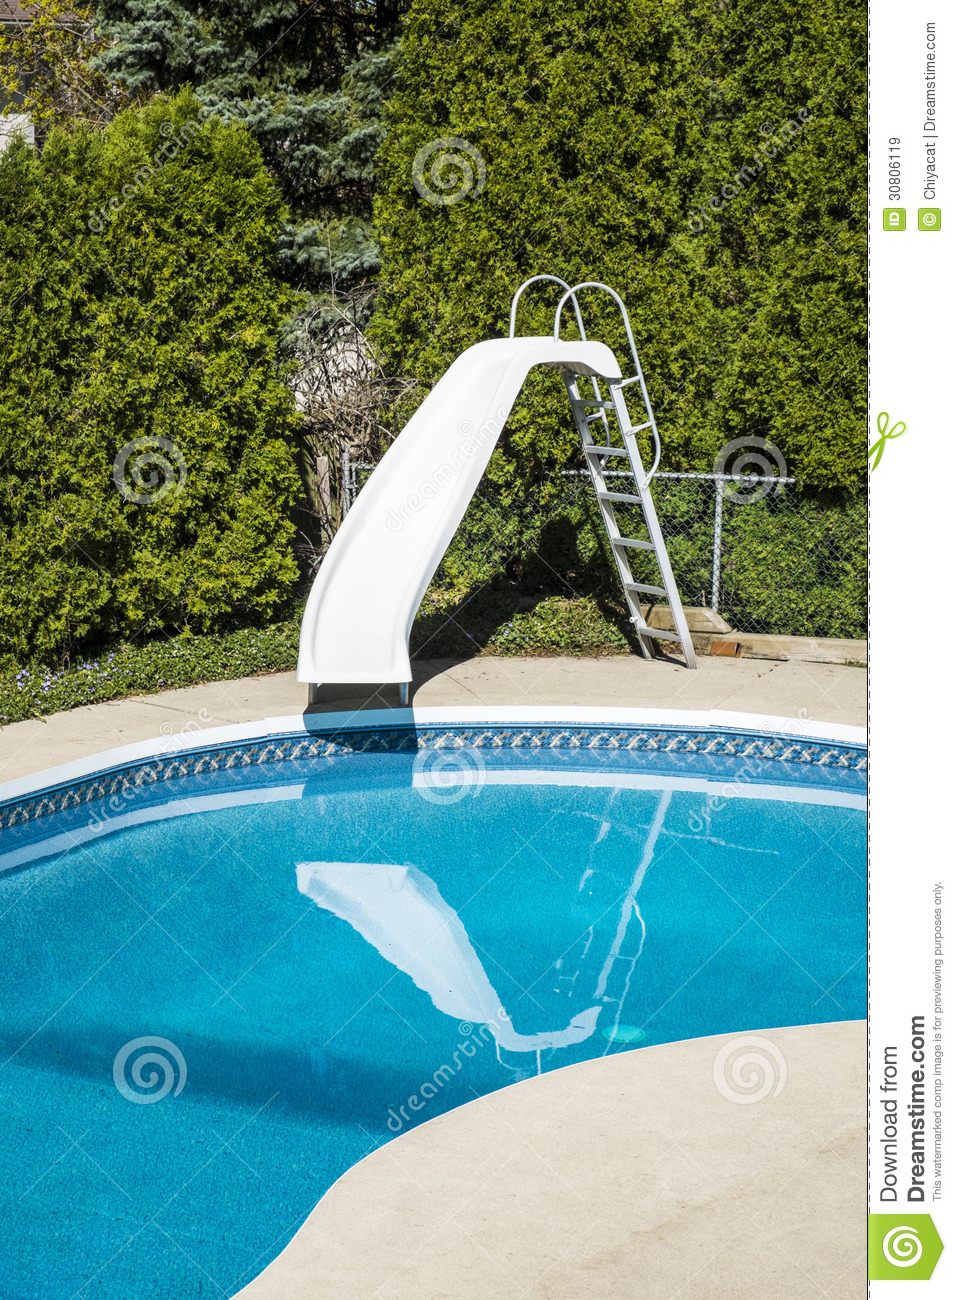 Backyard swimming pool royalty free stock images image for Garden swimming pool with slide